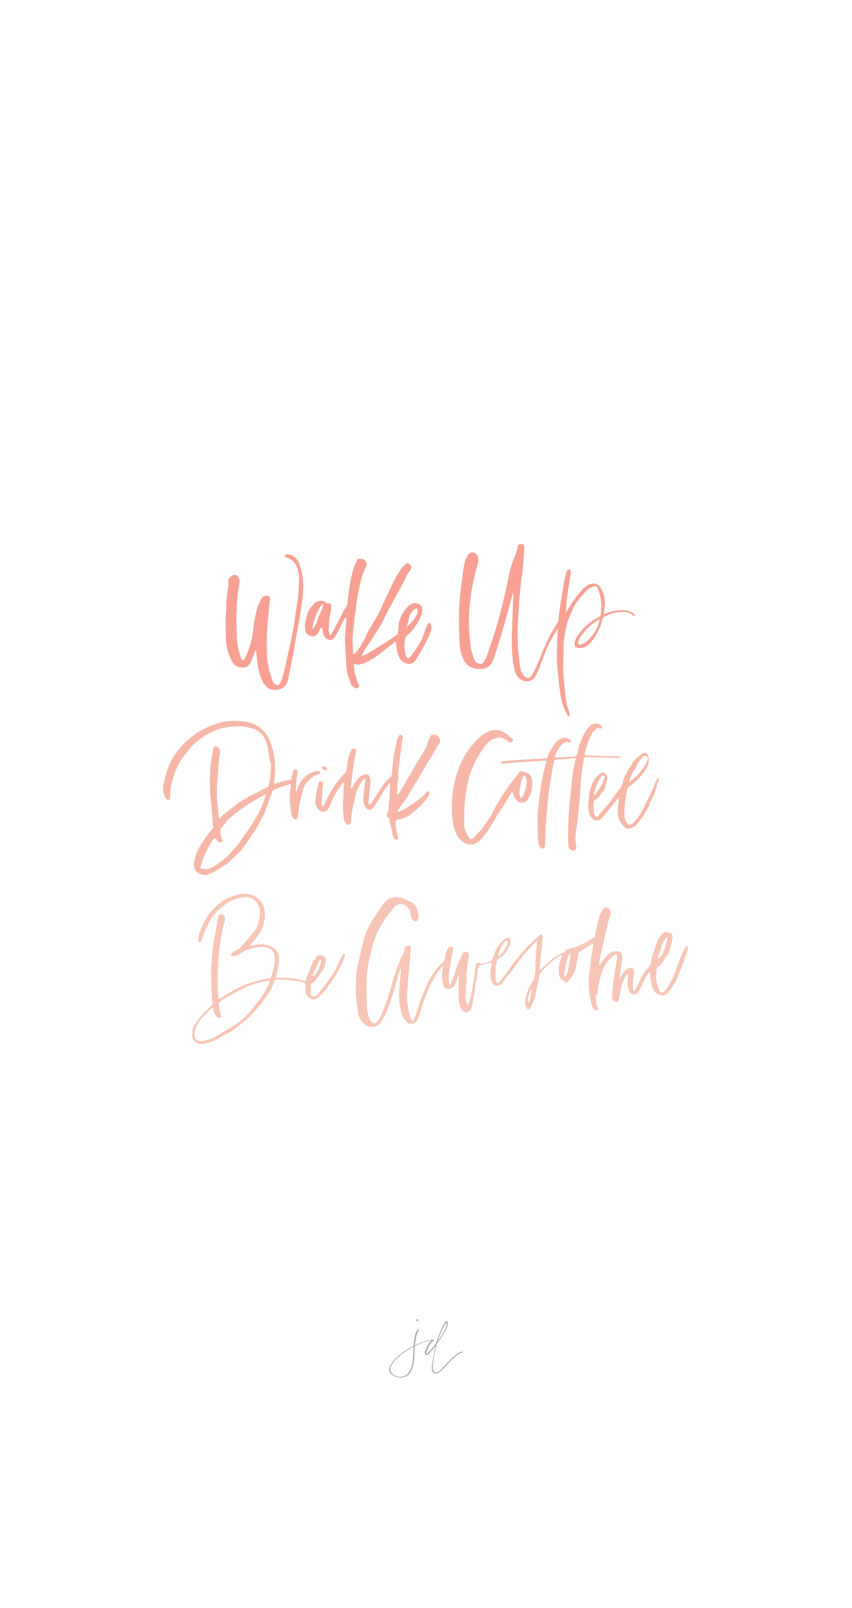 Downloadable Phone Backgrounds   Jennifer Diaz   Hand Lettering by Amy May Paper   Wake Up, Drink Coffee, Be Awesome